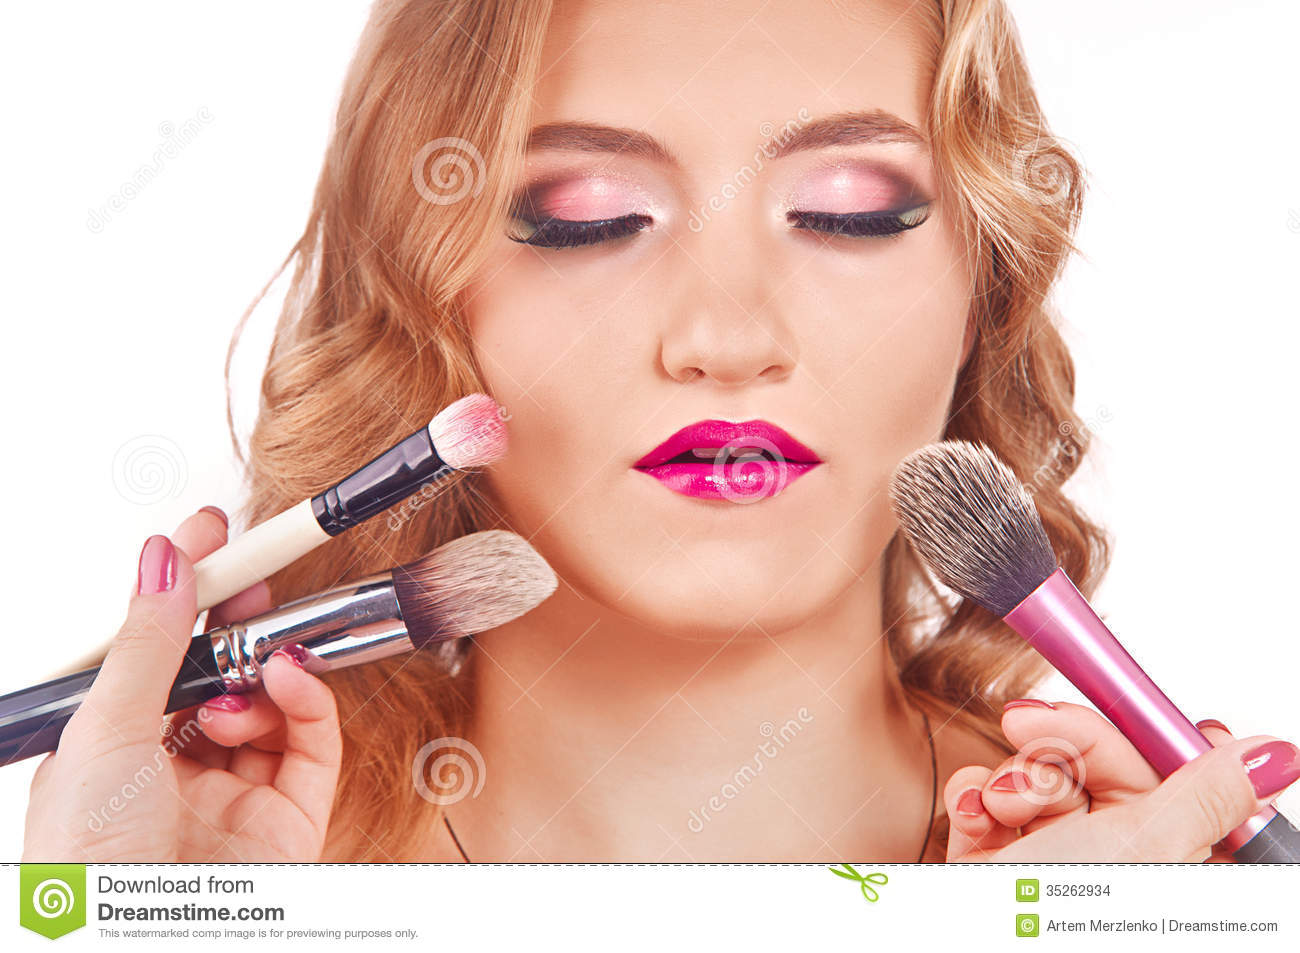 Makeup Process Of A Young Pretty Girl Stock Photo - Image ...